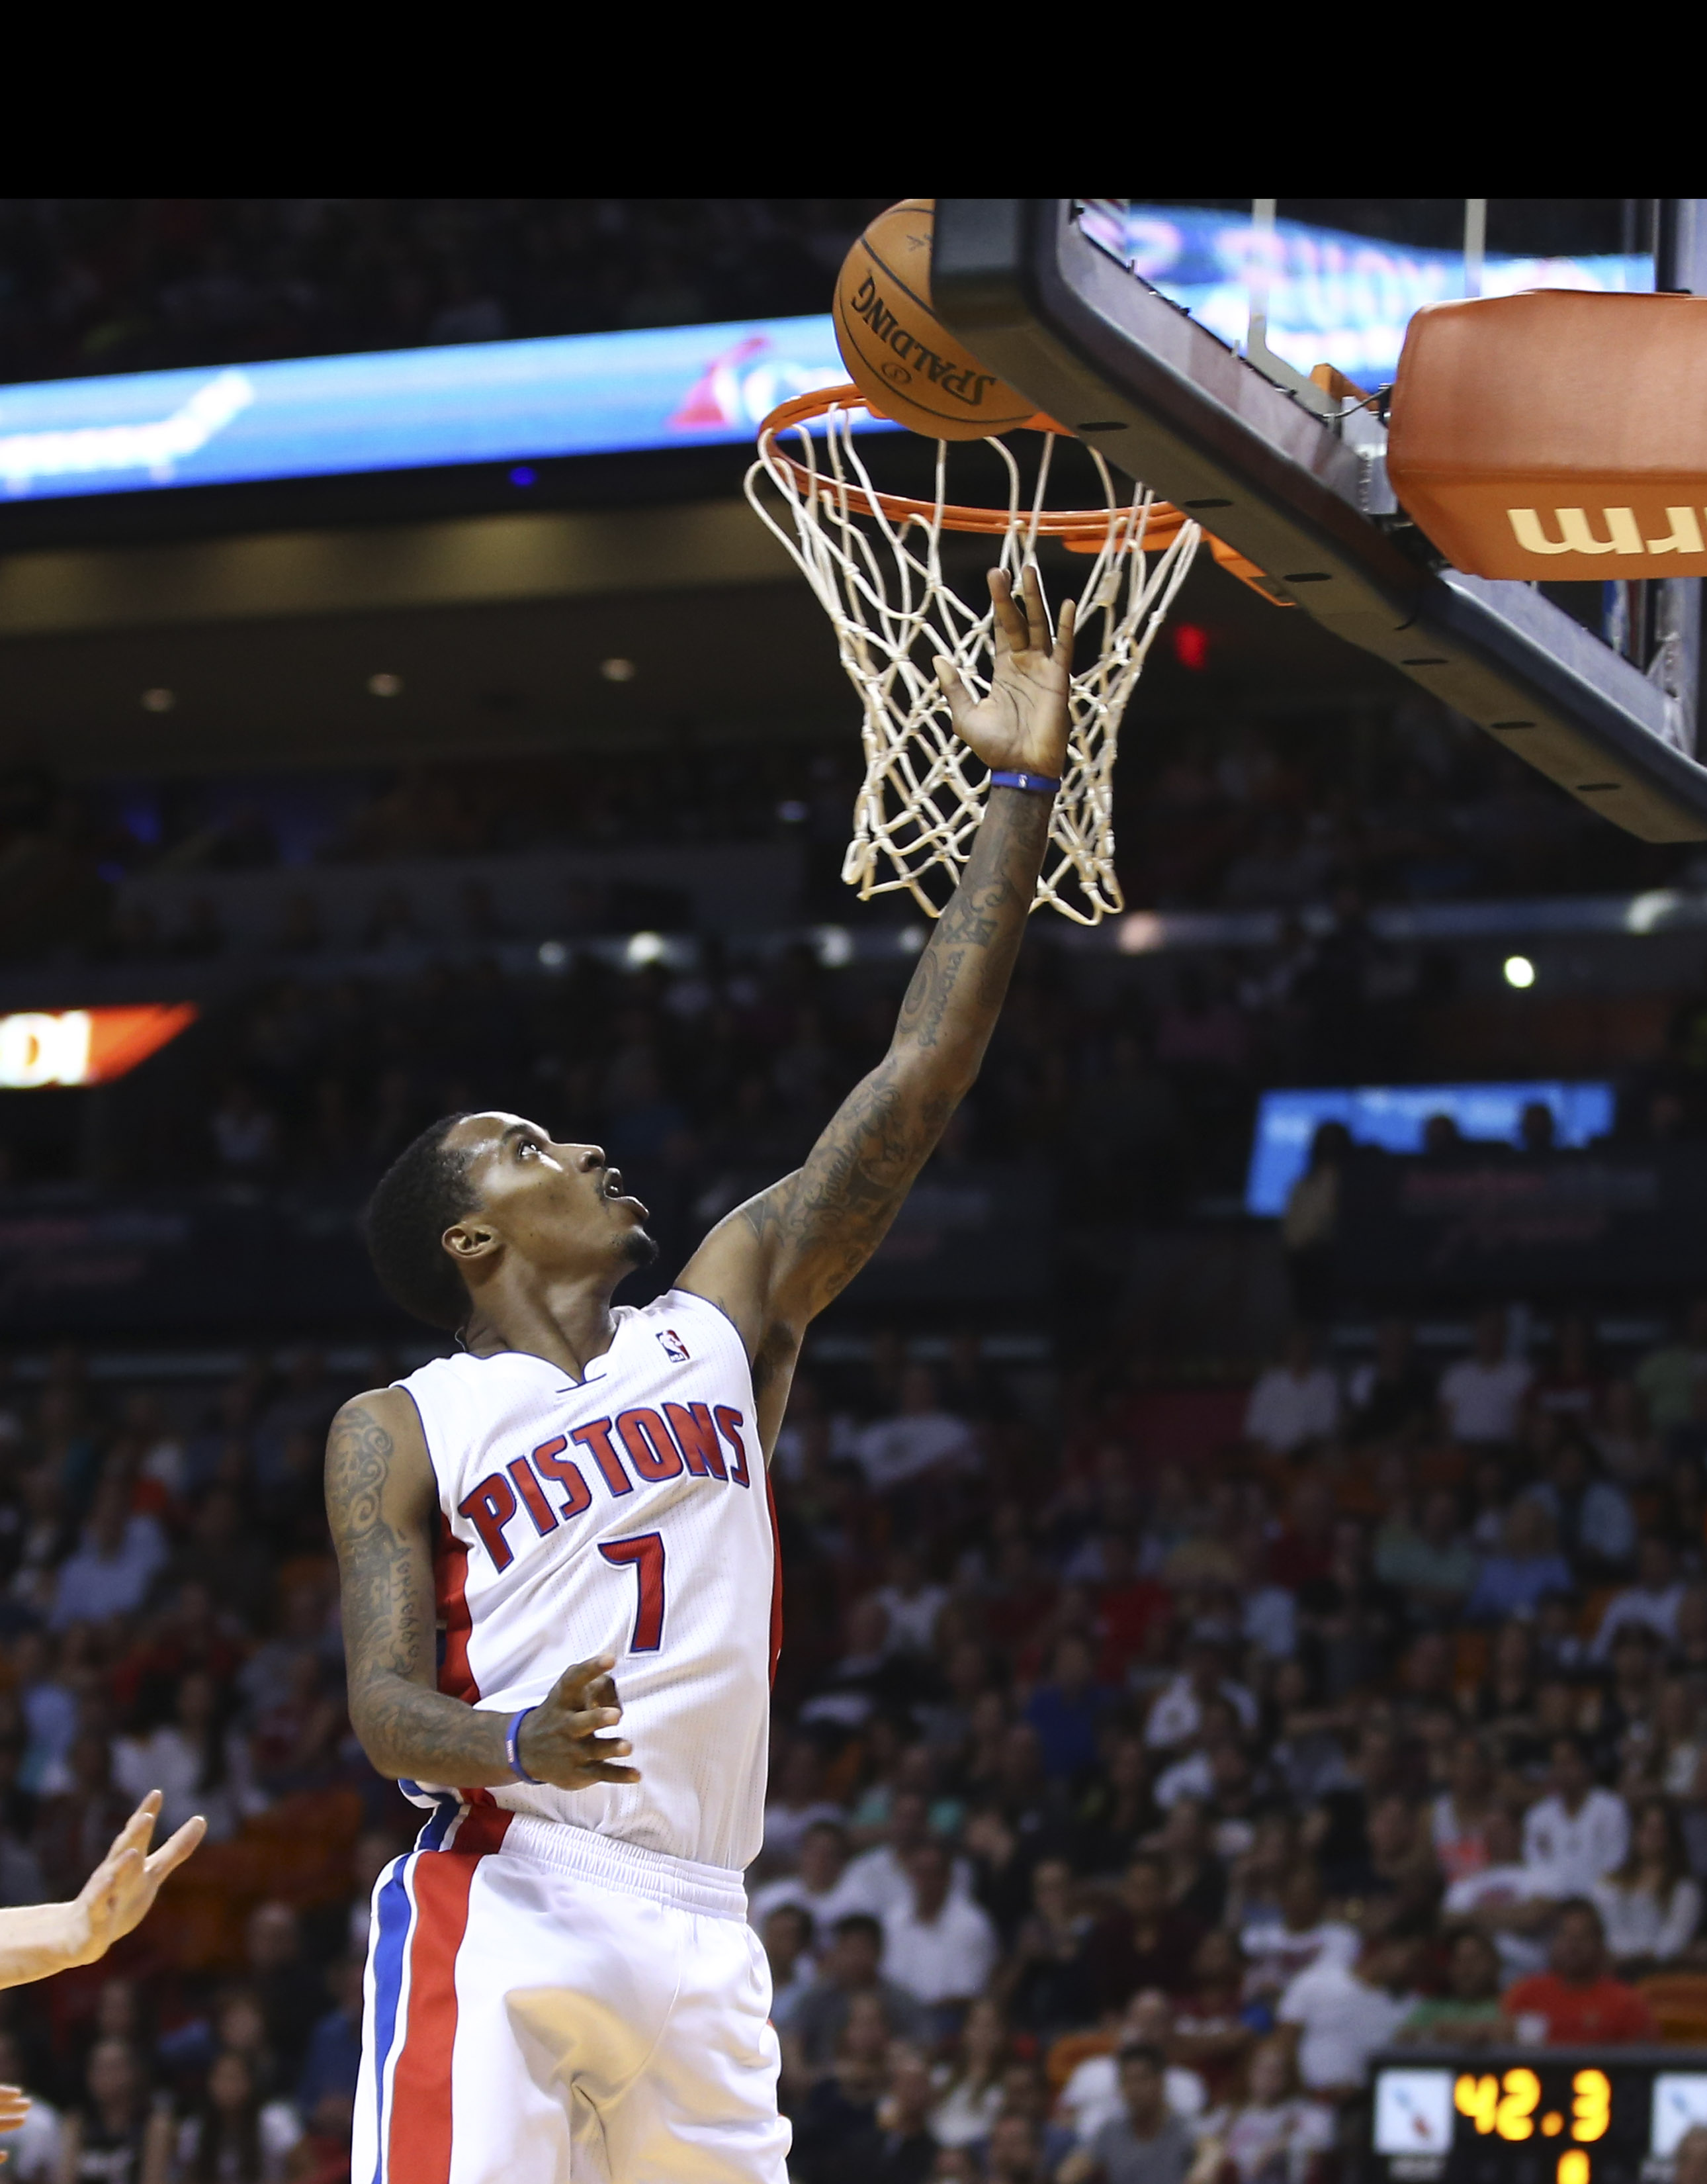 Detroit Pistons' Brandon Jennings goes to the basket against the Miami Heat during the second half of an NBA basketball game in Miami, Monday, Feb. 3, 2014. The Heat won 102-96